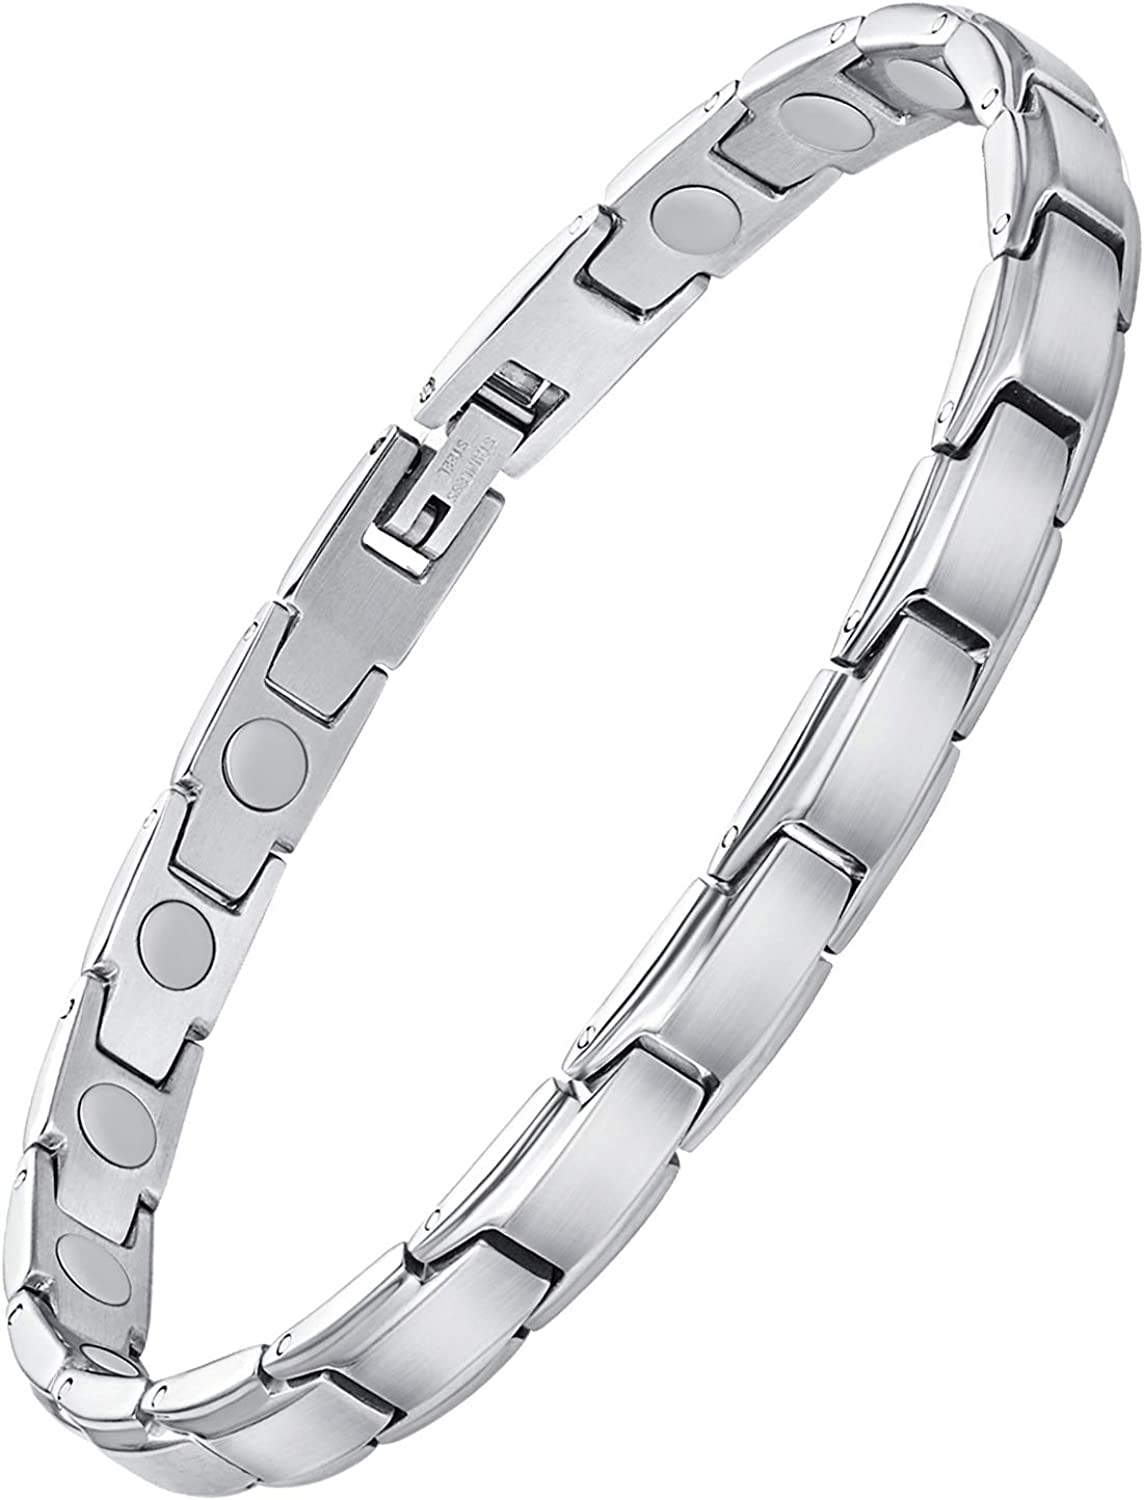 Feraco Magnetic Bracelet for Women Arthritis Pain Relief Sleek Stainless Steel 3500 Gauss Strong Magnet Therapy Bracelets